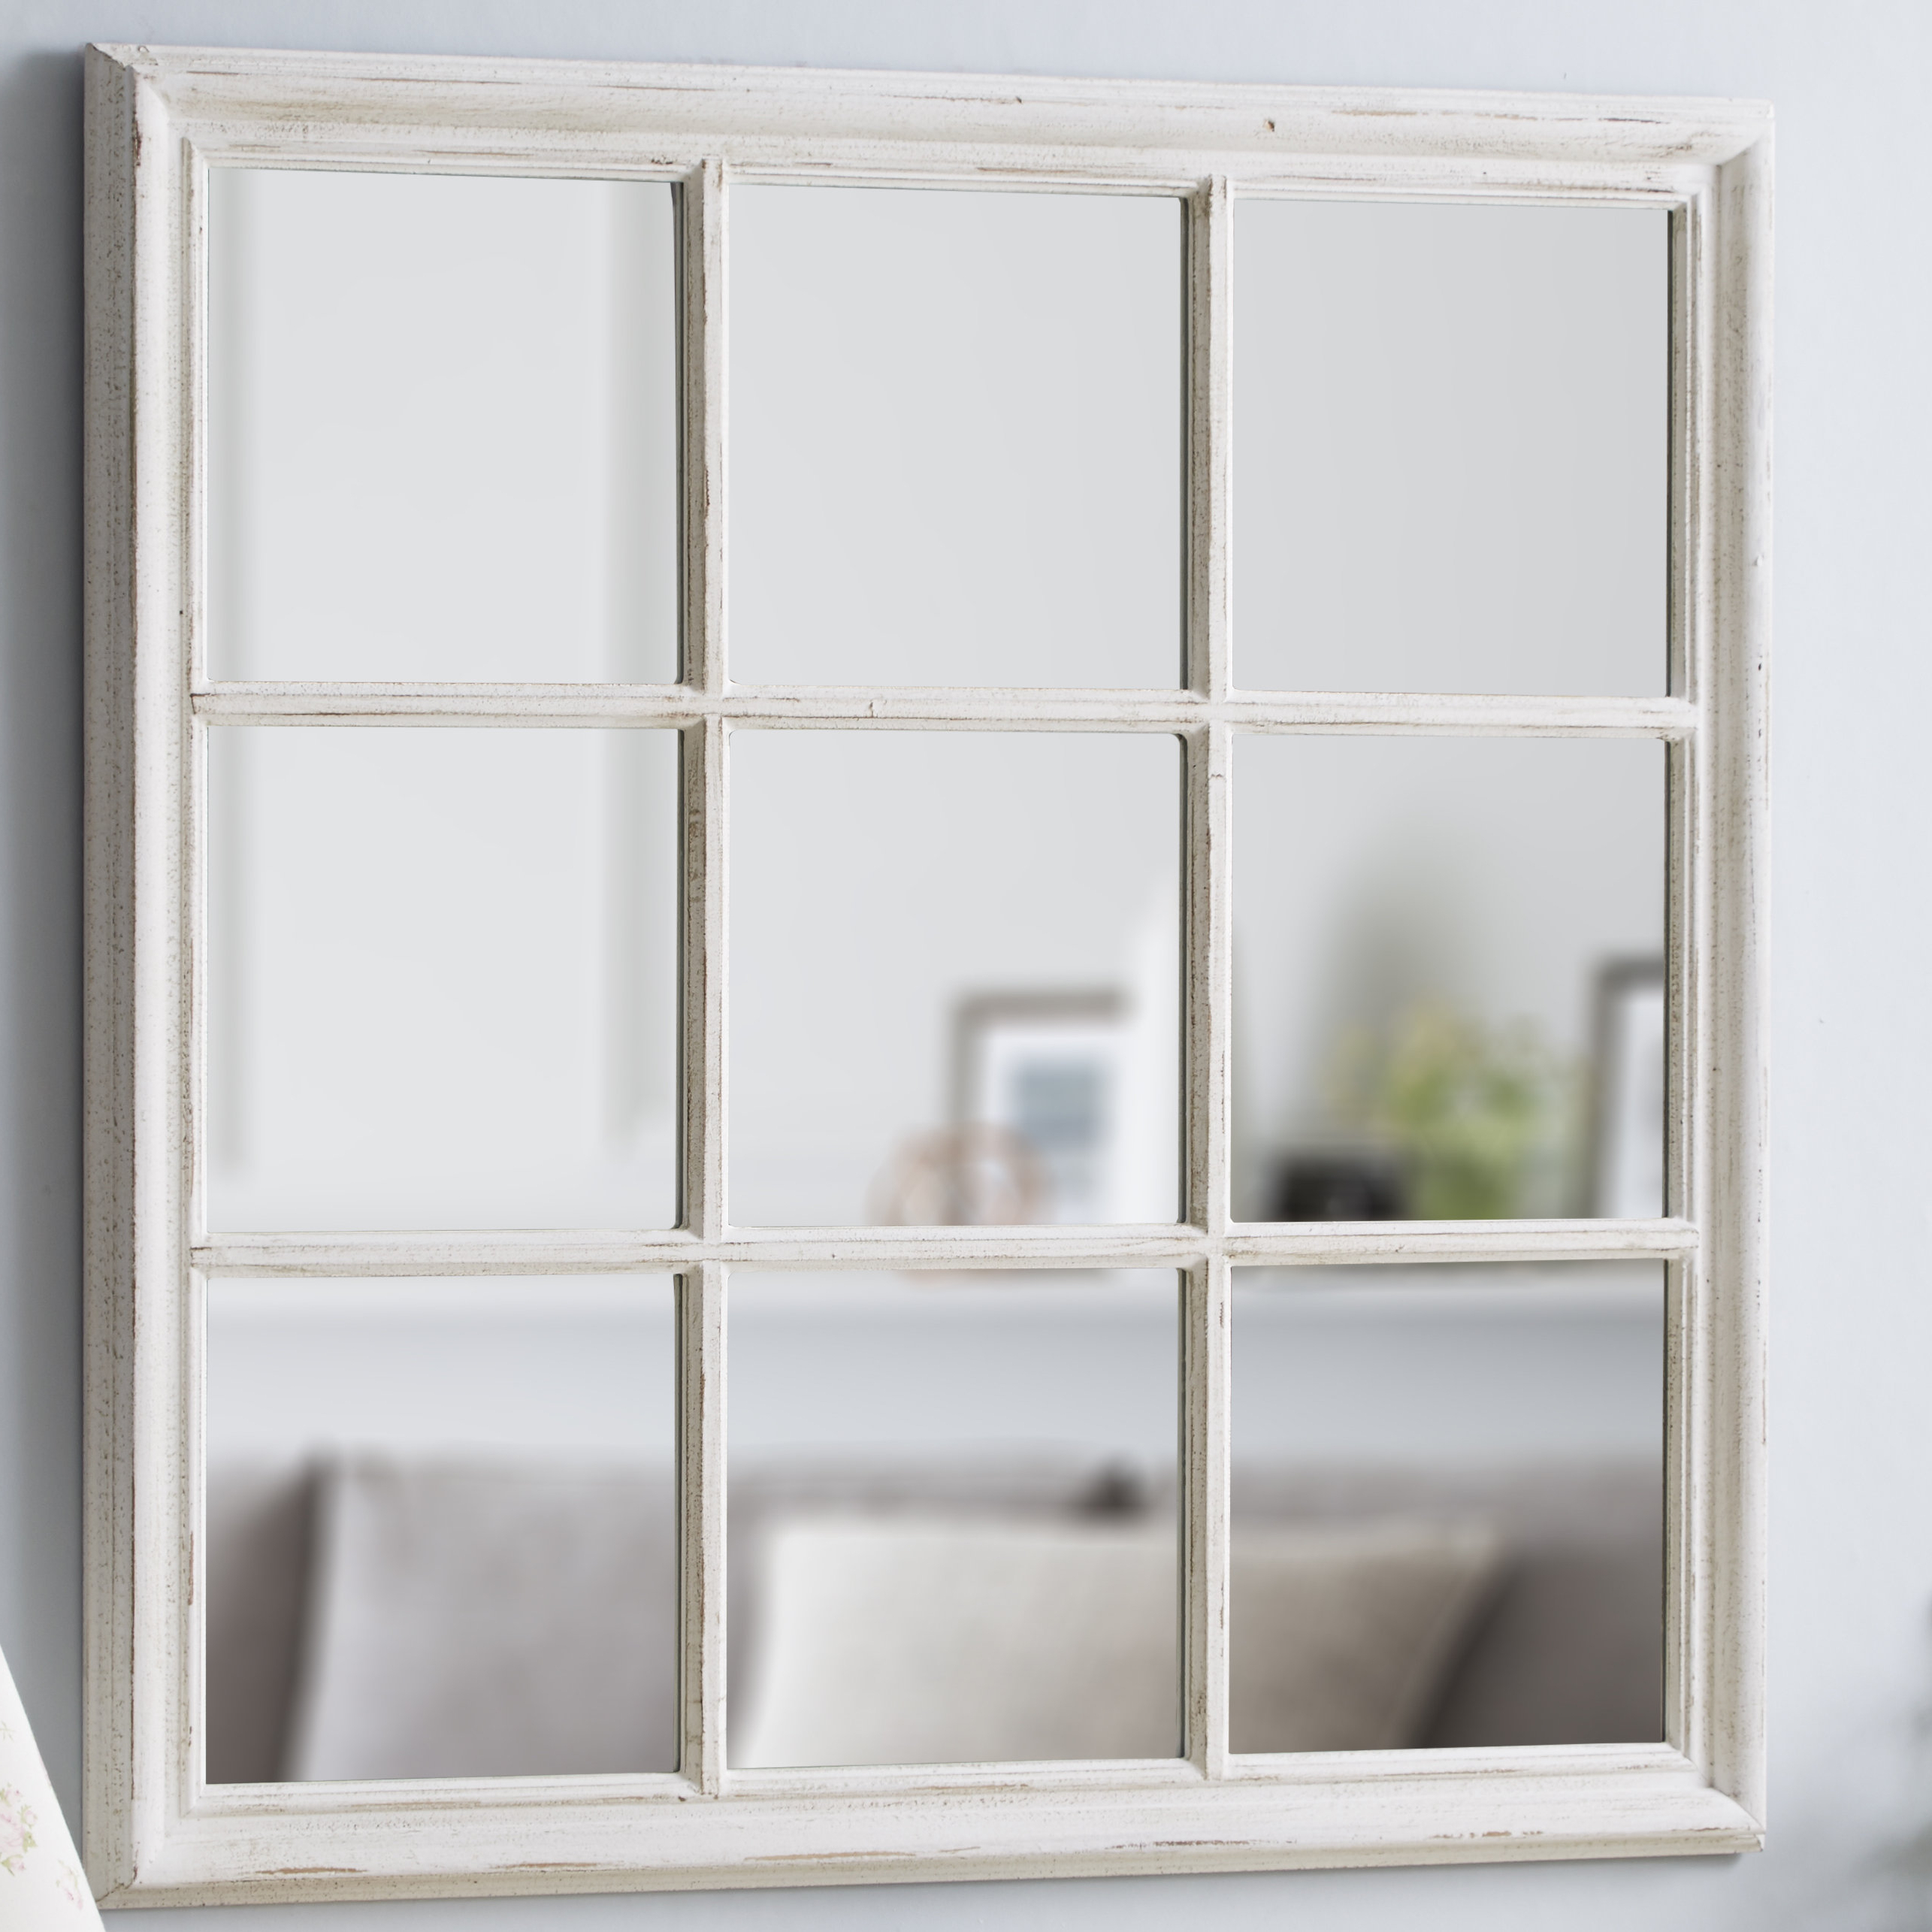 Most Recently Released Square Wall Mirrors In Square Window Wall Mirror (View 6 of 20)